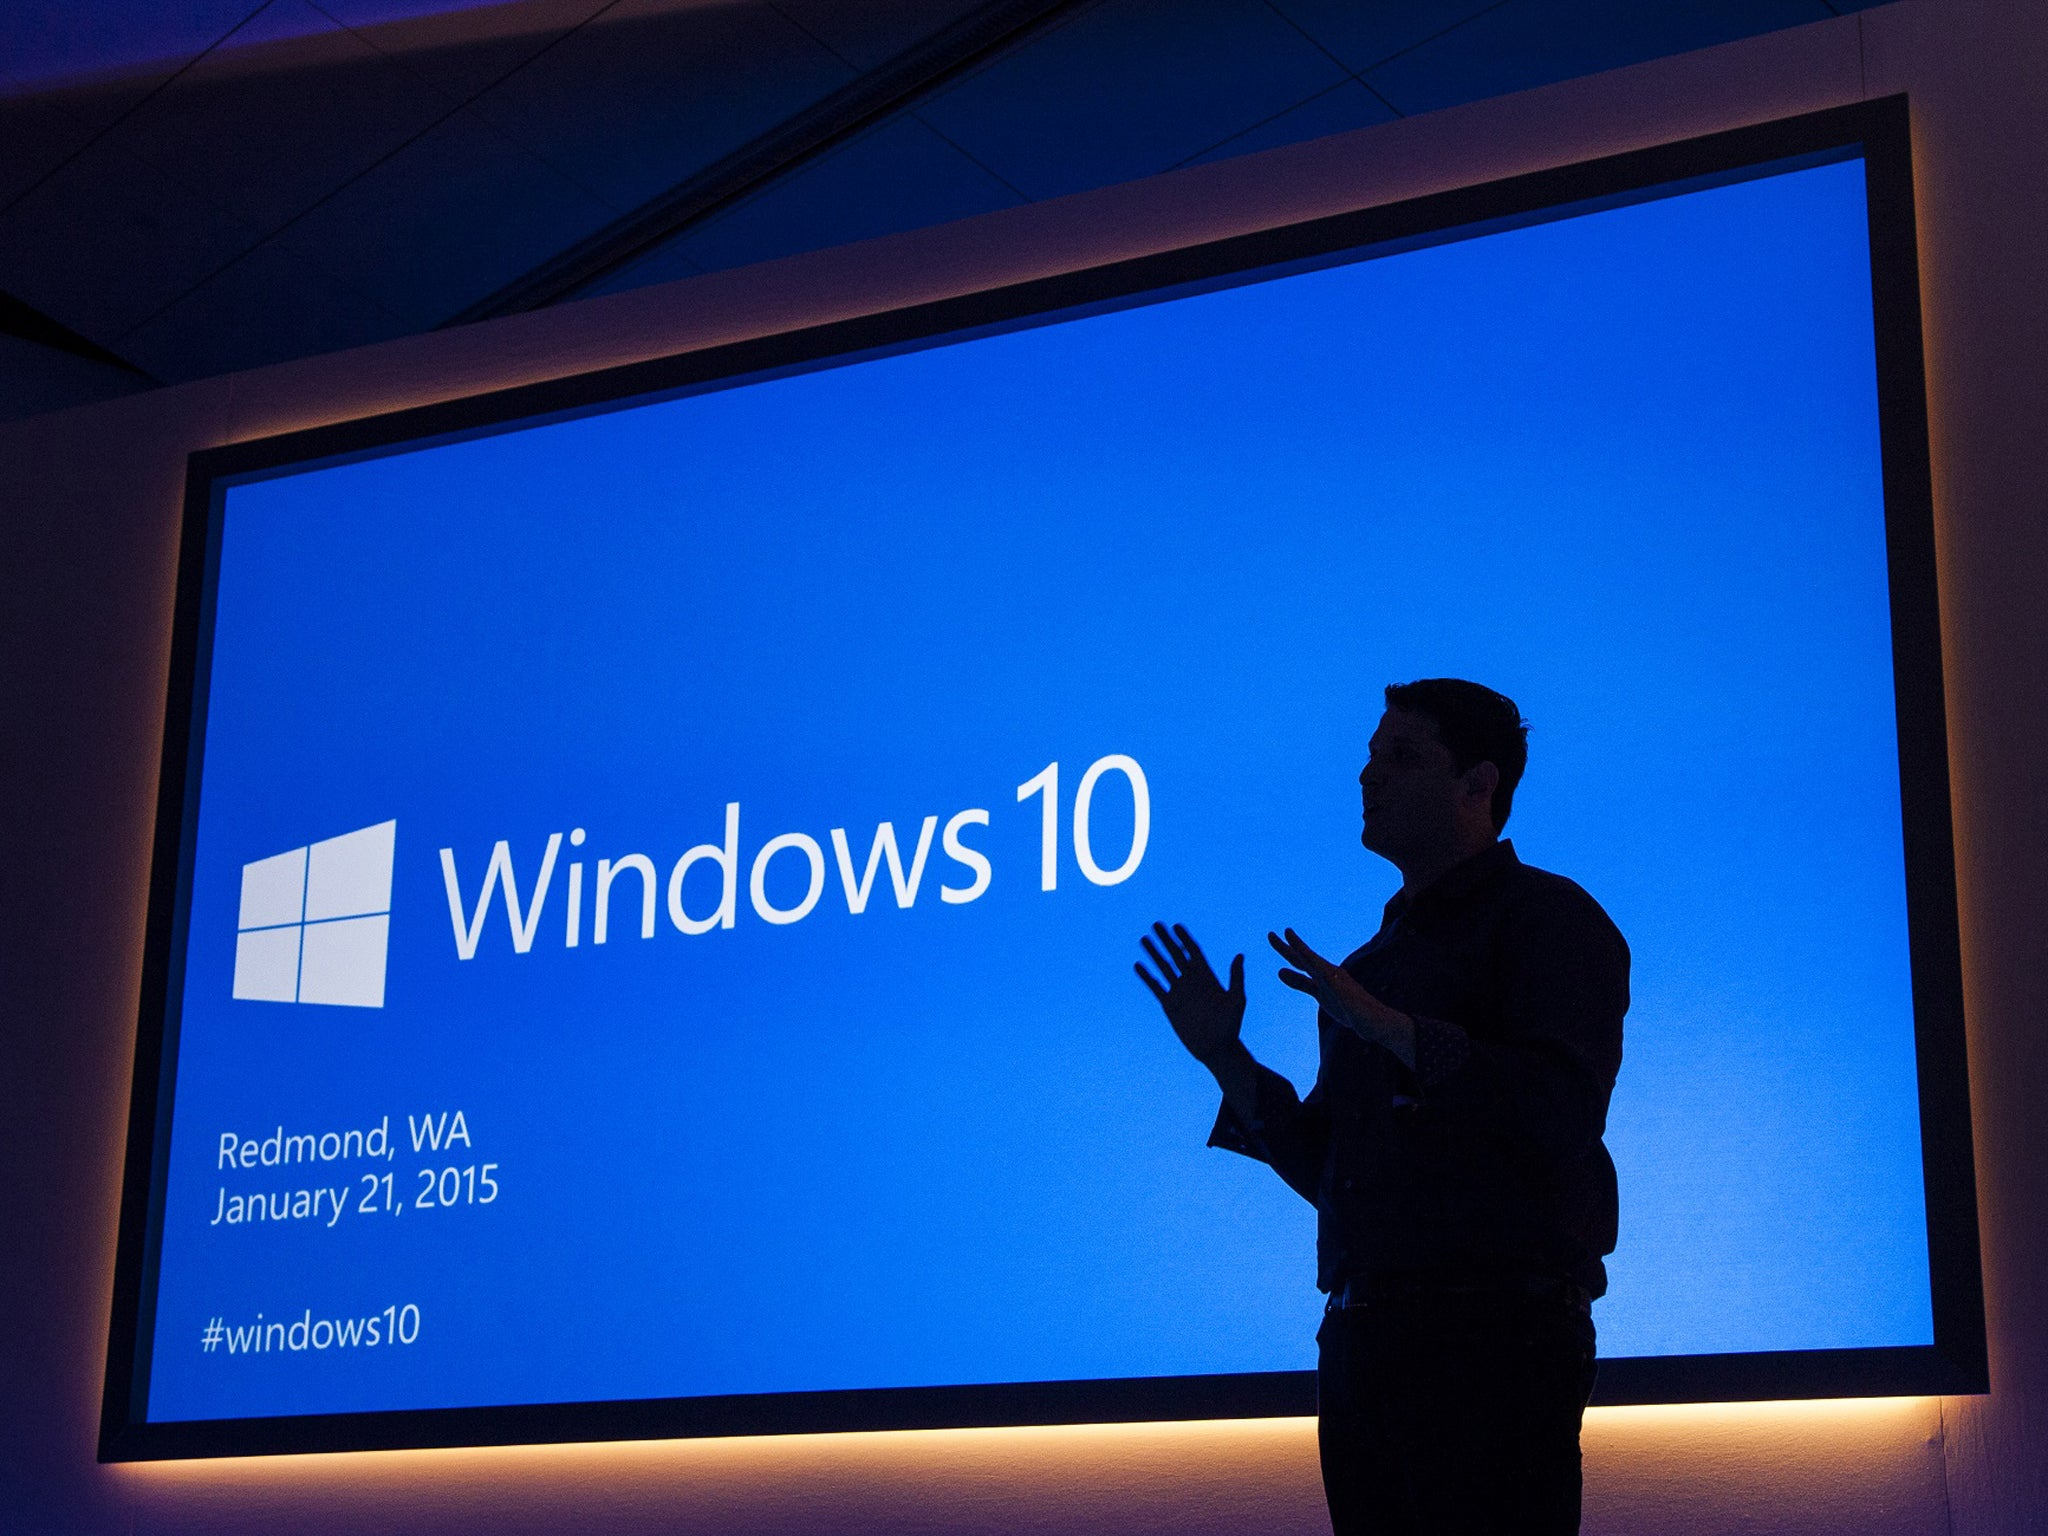 Windows 10: Microsoft gives users their last chance to upgrade before massive price hike